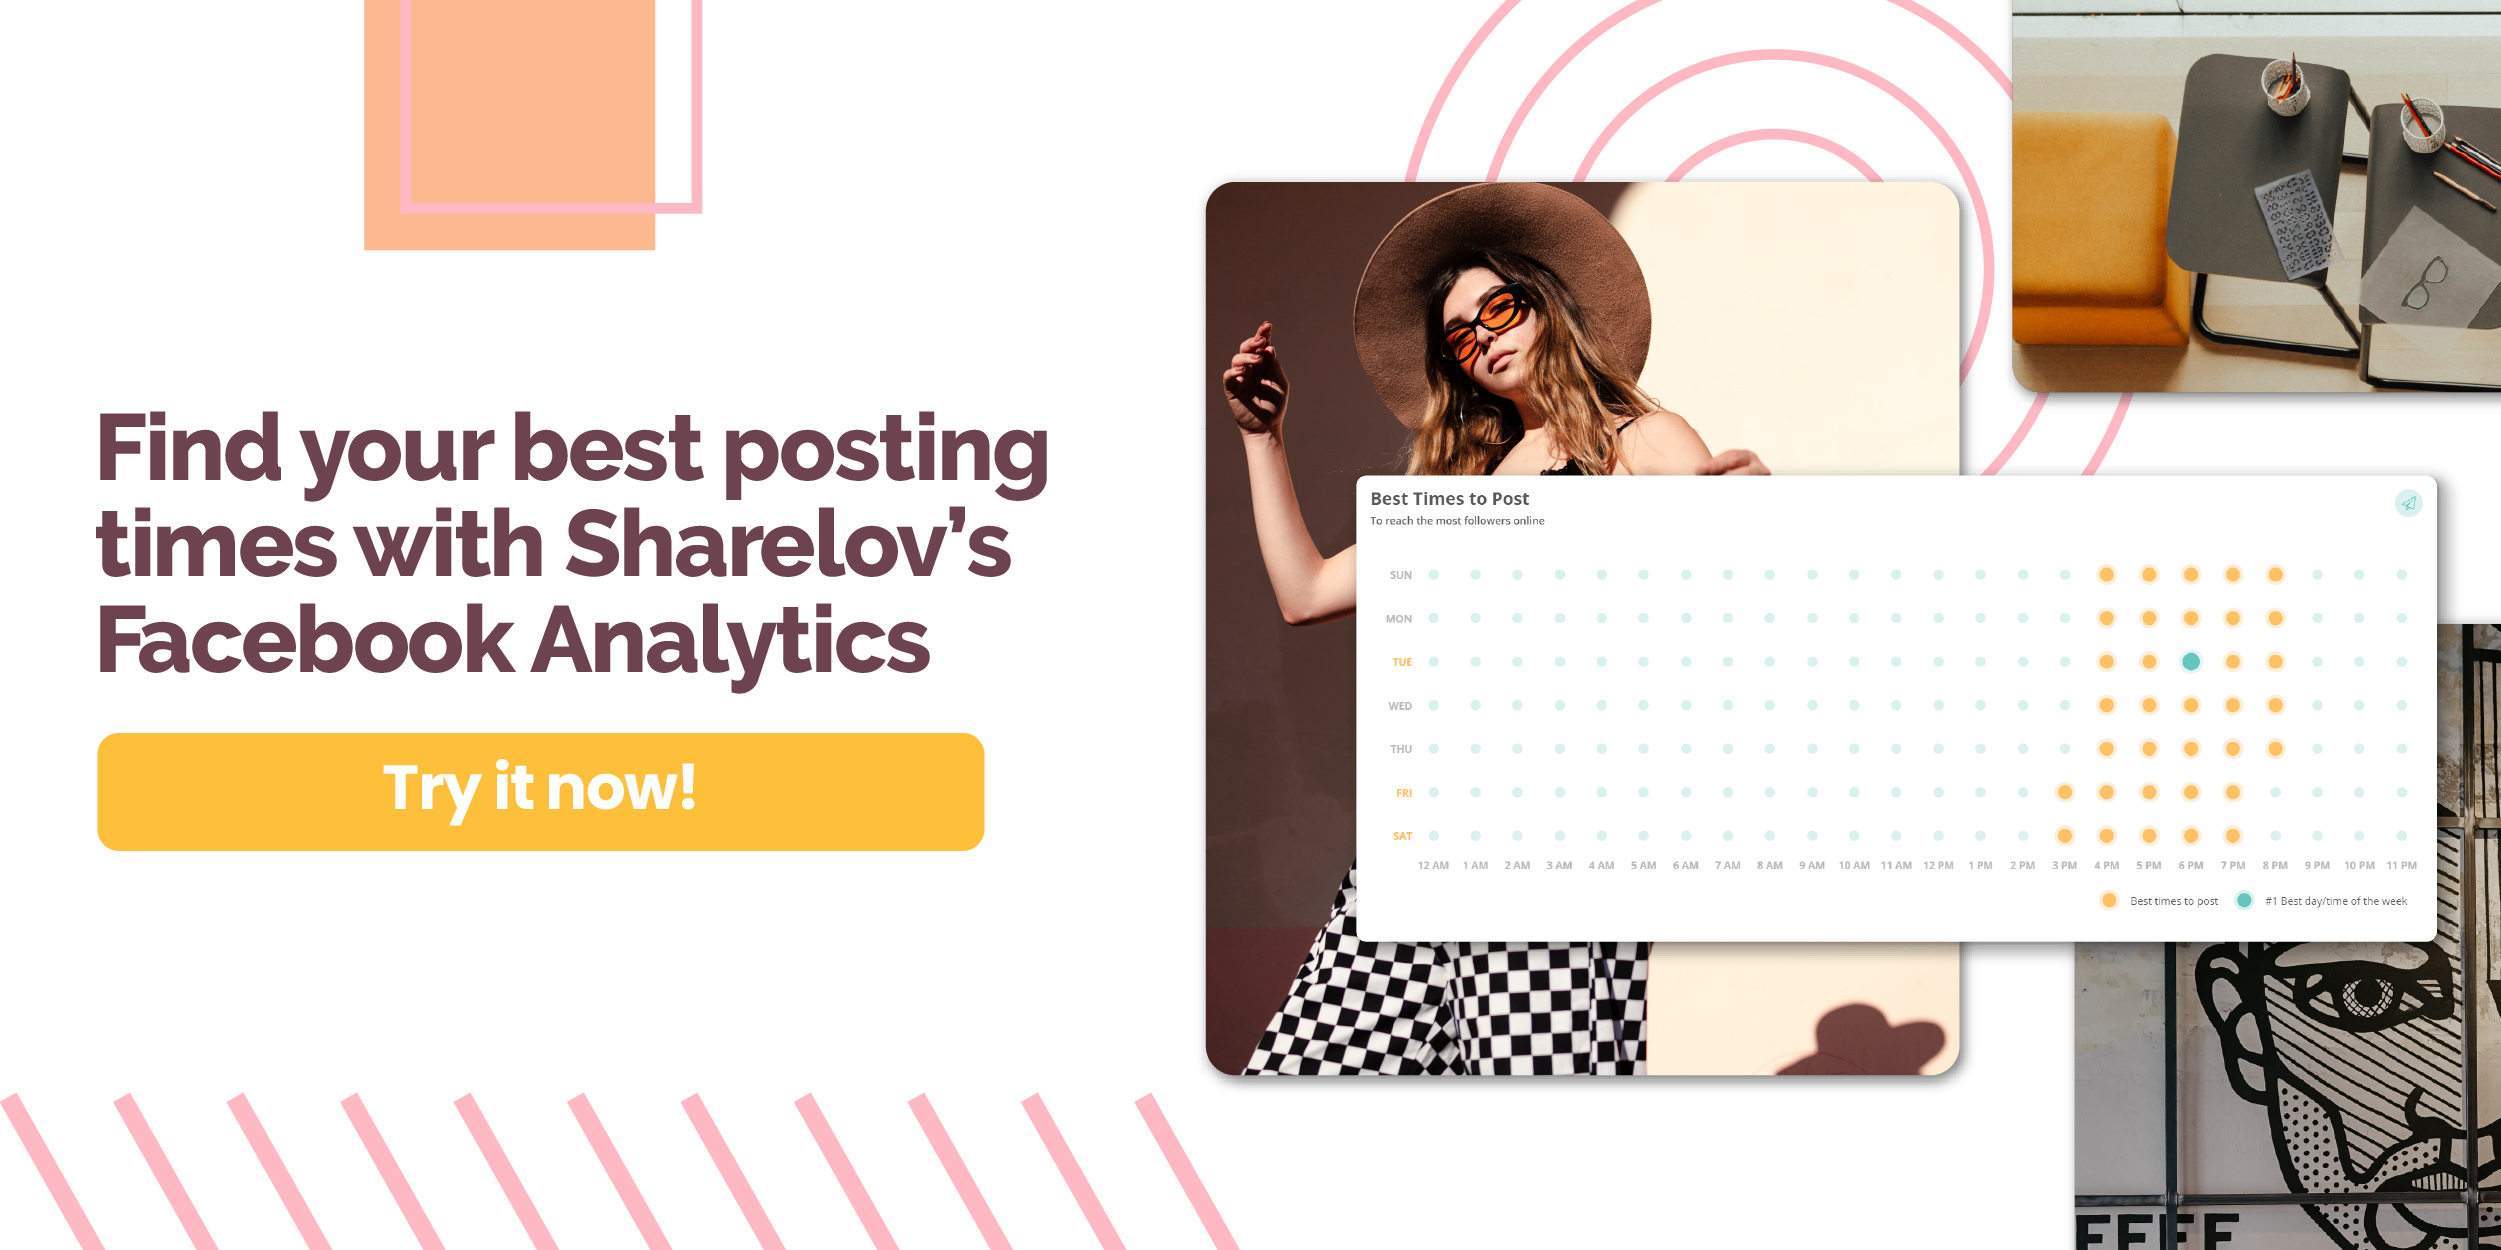 Find your best posting times with Sharelov's Facebook Analytics